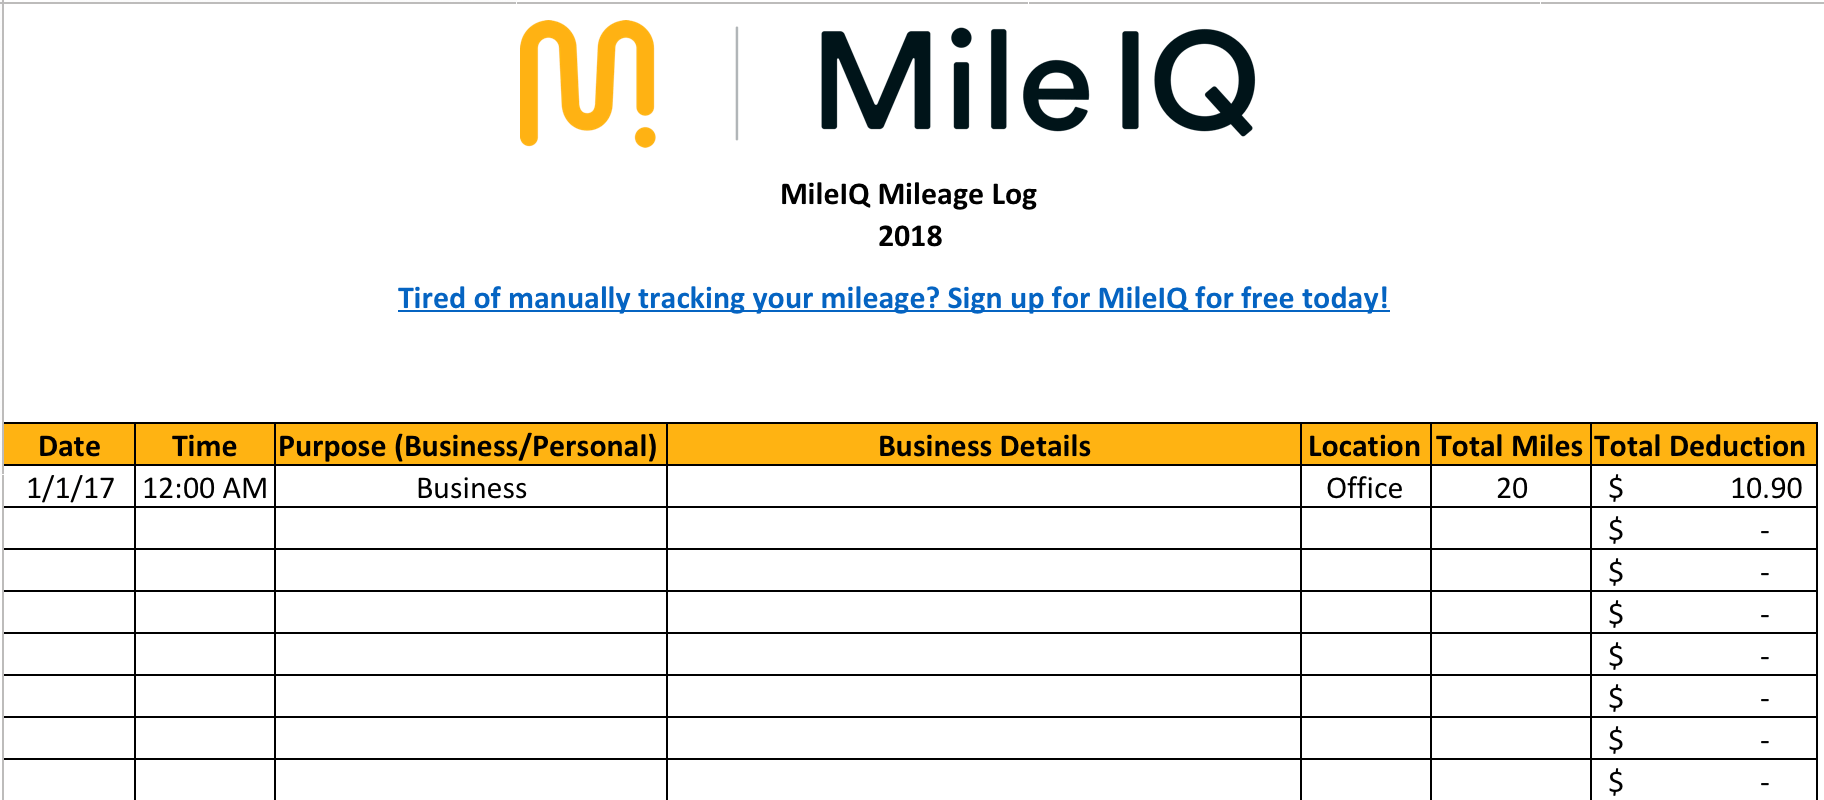 Mileage reimbursement and tracking log. Free Excel Mileage Log Template For Taxes